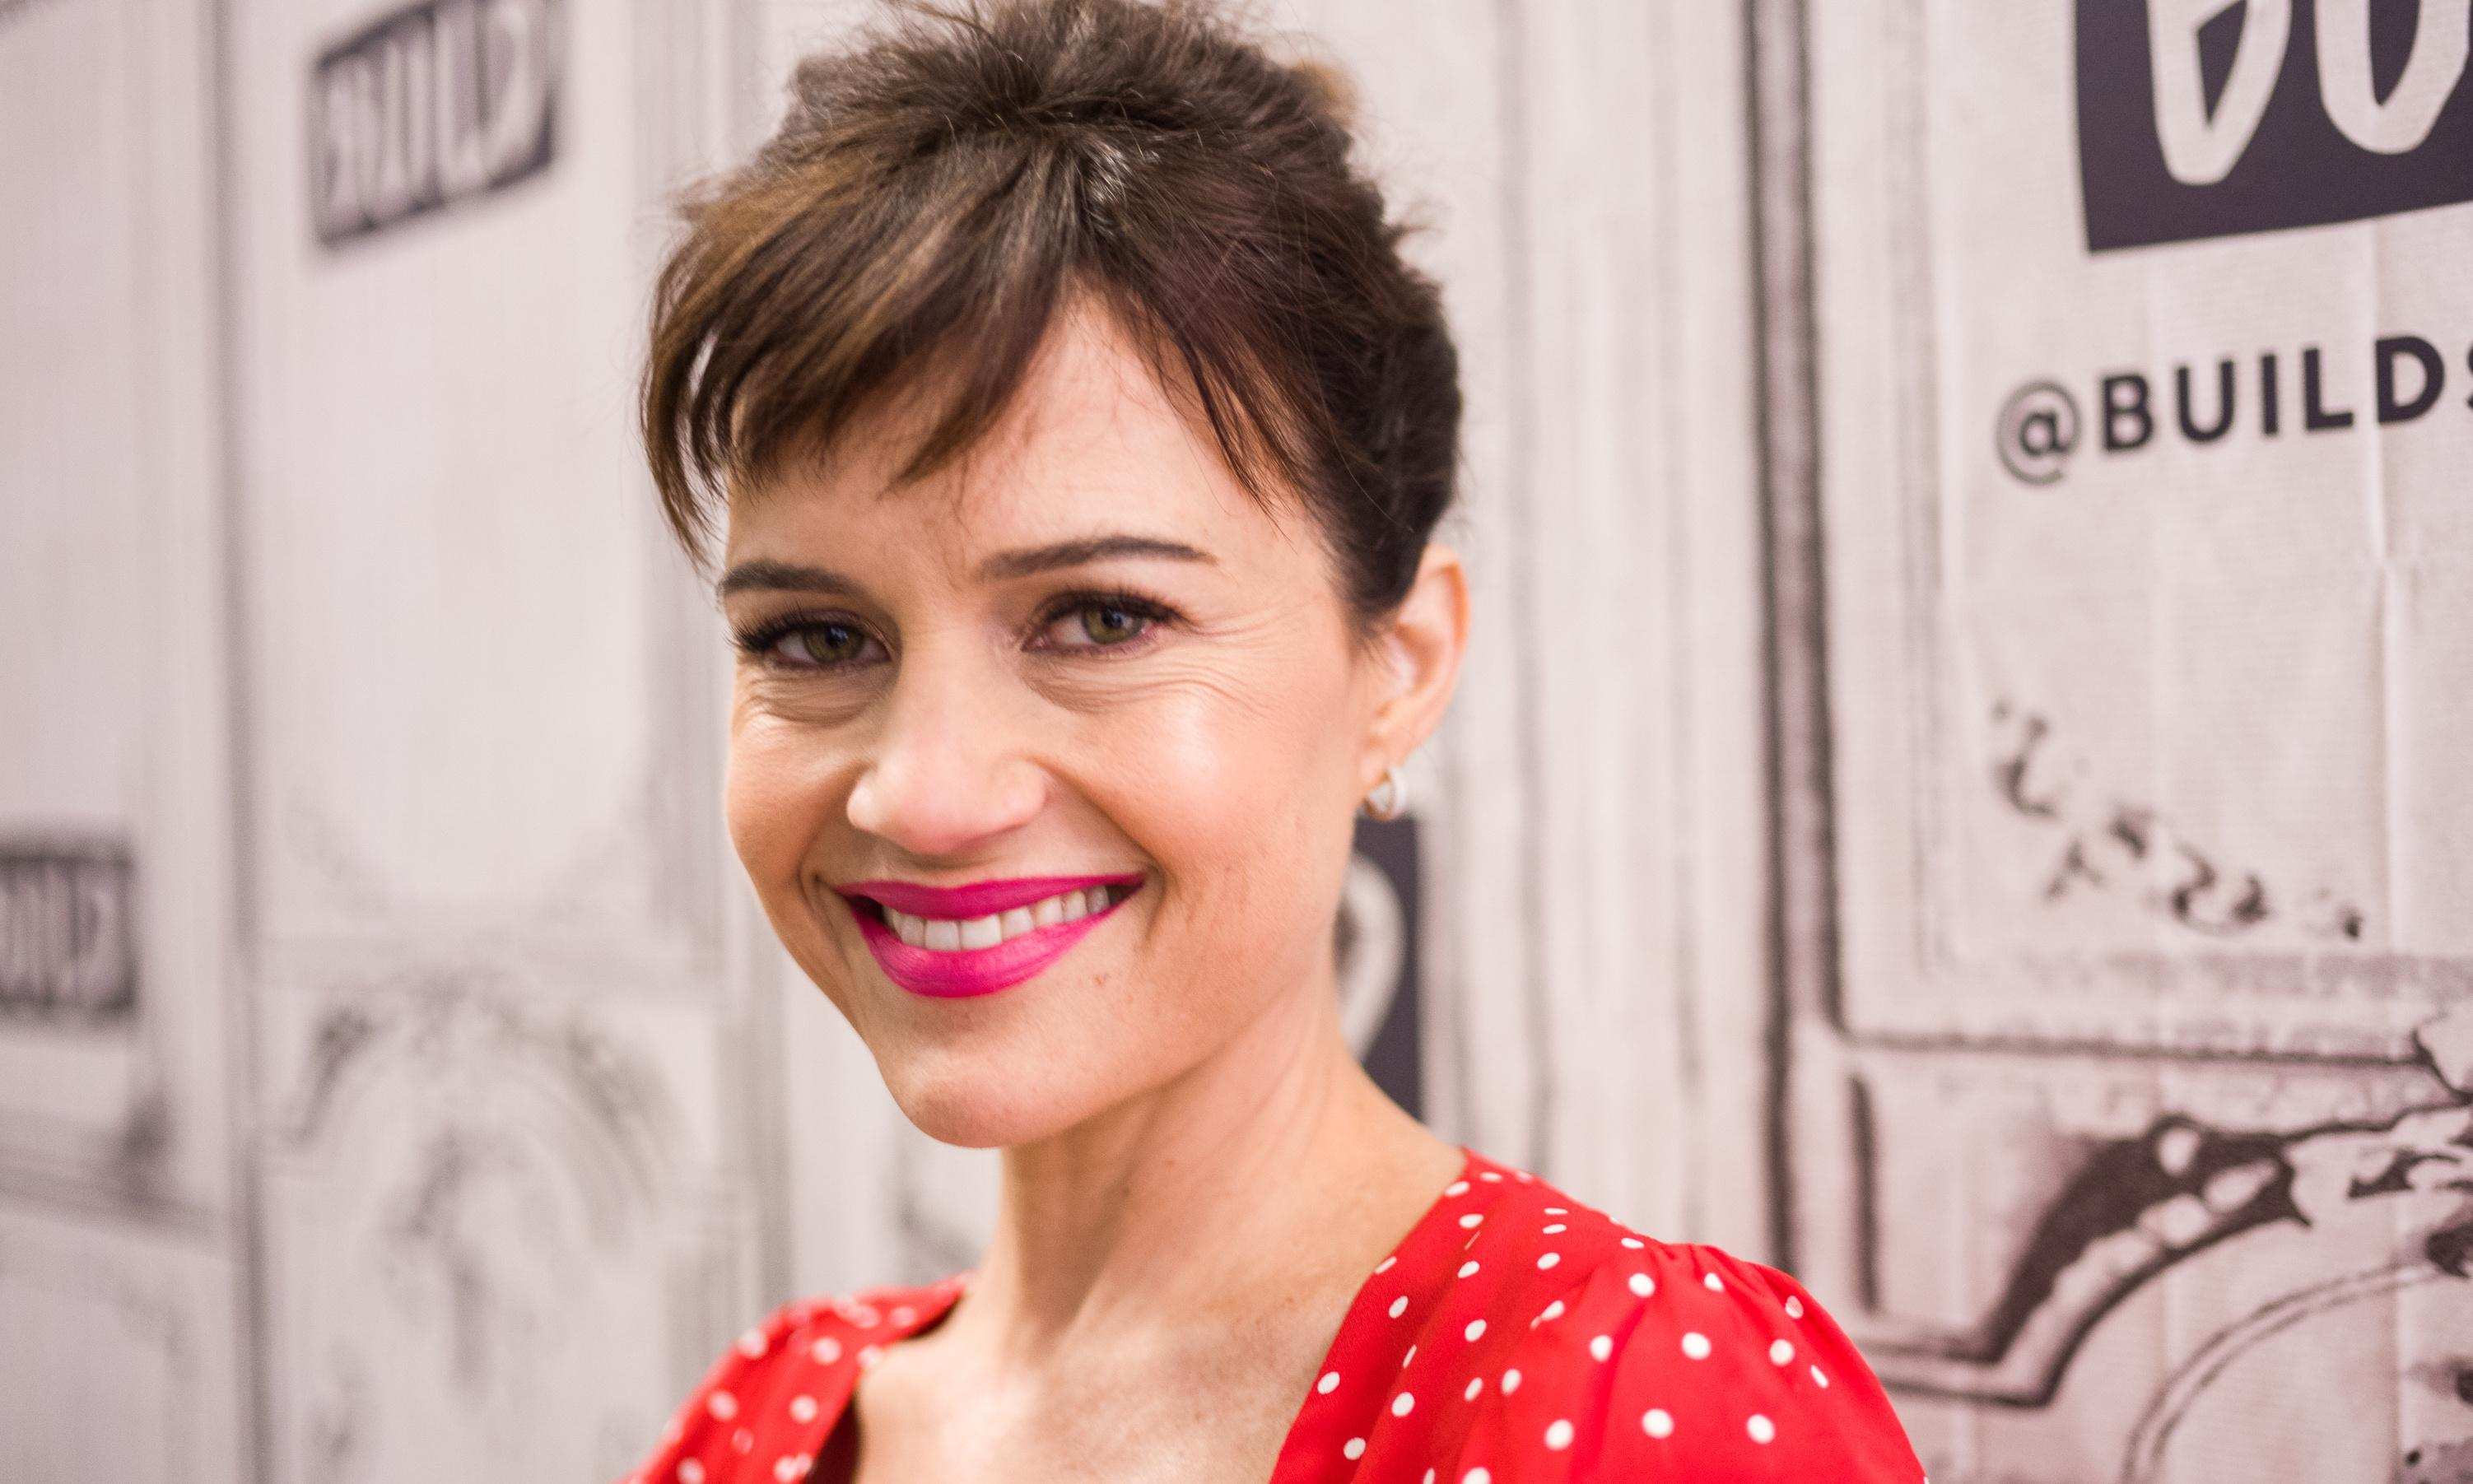 Carla Gugino: 'Sexuality is a primal part of who we are but it's been misused'